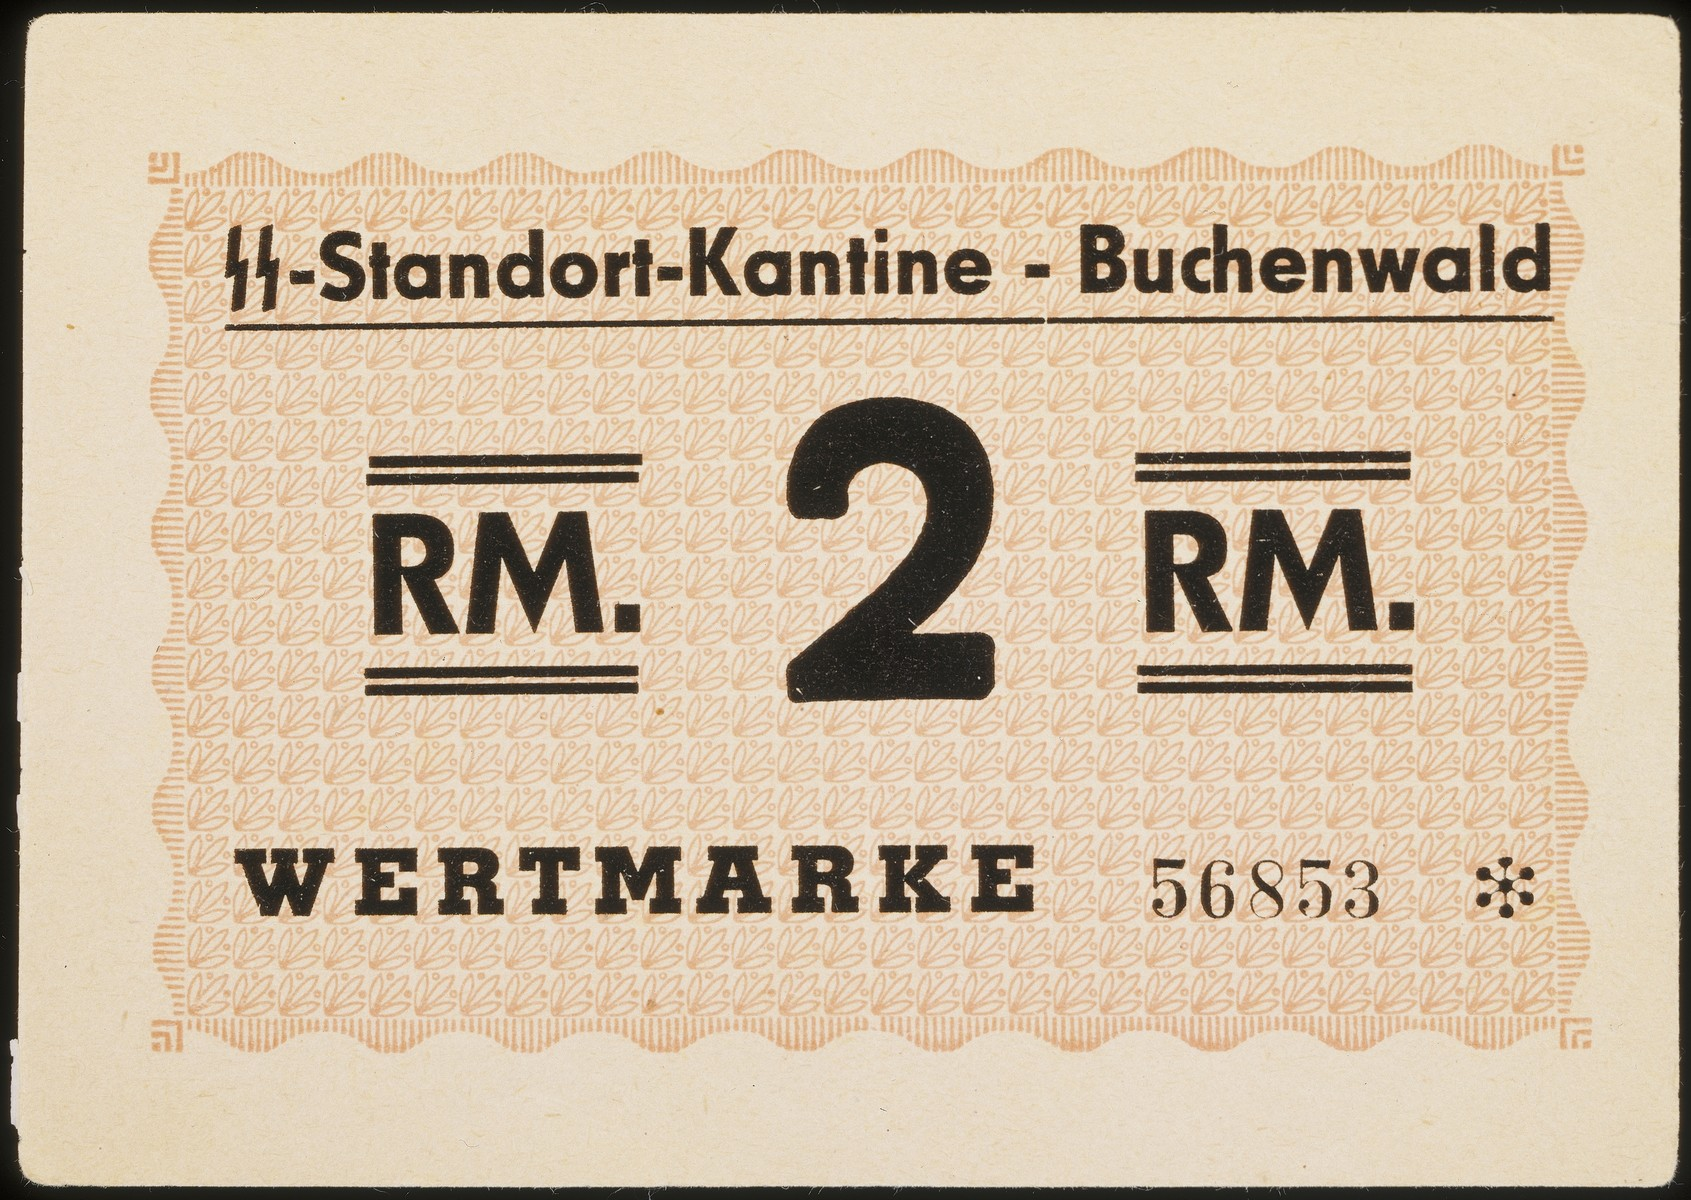 """2 Reichs Mark note from the Buchenwald concentration camp.  Printed on the front of the bill is: """"SS-Standort-Kantine-Buchenwald; RM 2 RM/ Wertmarke 56853 [SS Standort Cantine; 2 Reichs Marks; standard value, serial number 56853]."""